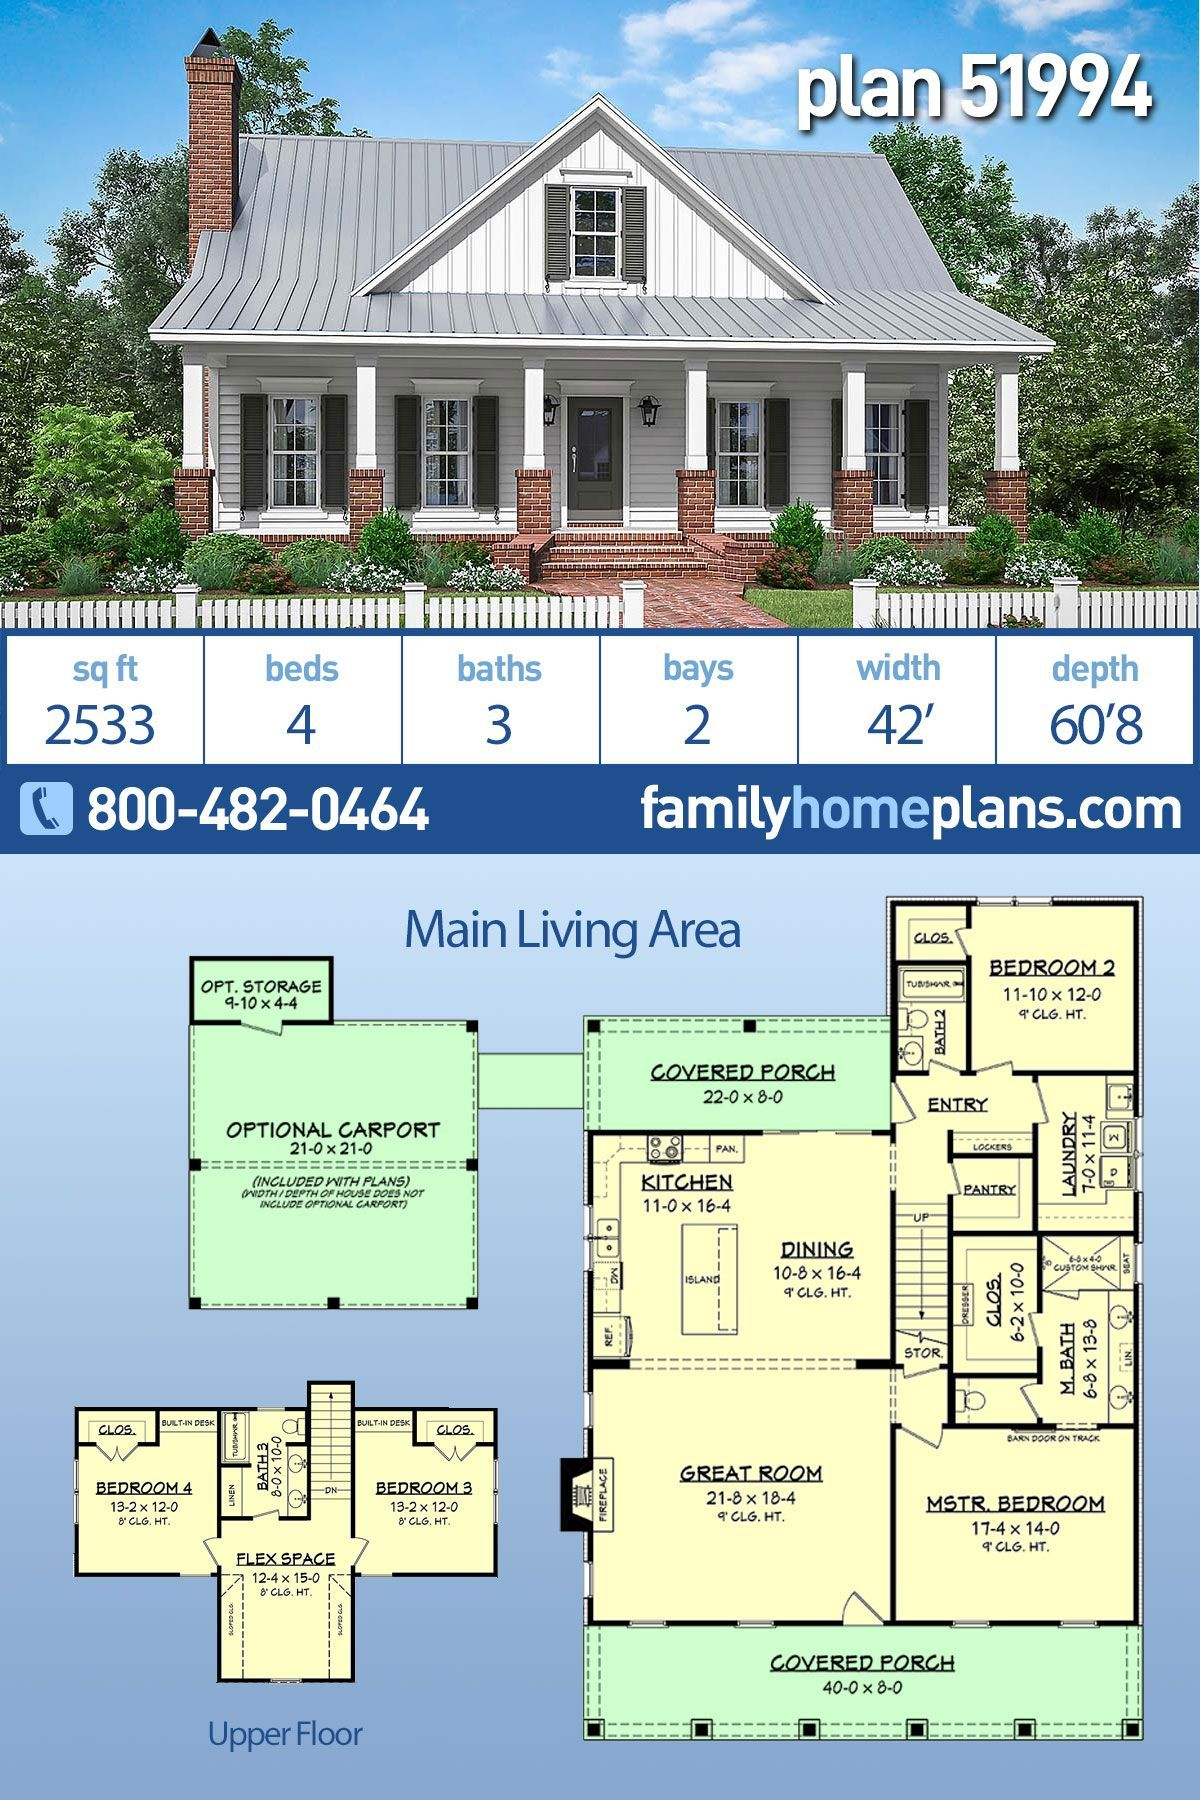 New Country House Plan 4 Bedroom 3 Bath 2533 Sq Ft Country Floor Plan At Family Home Plans In 2020 Family House Plans Country Floor Plans Country House Plans